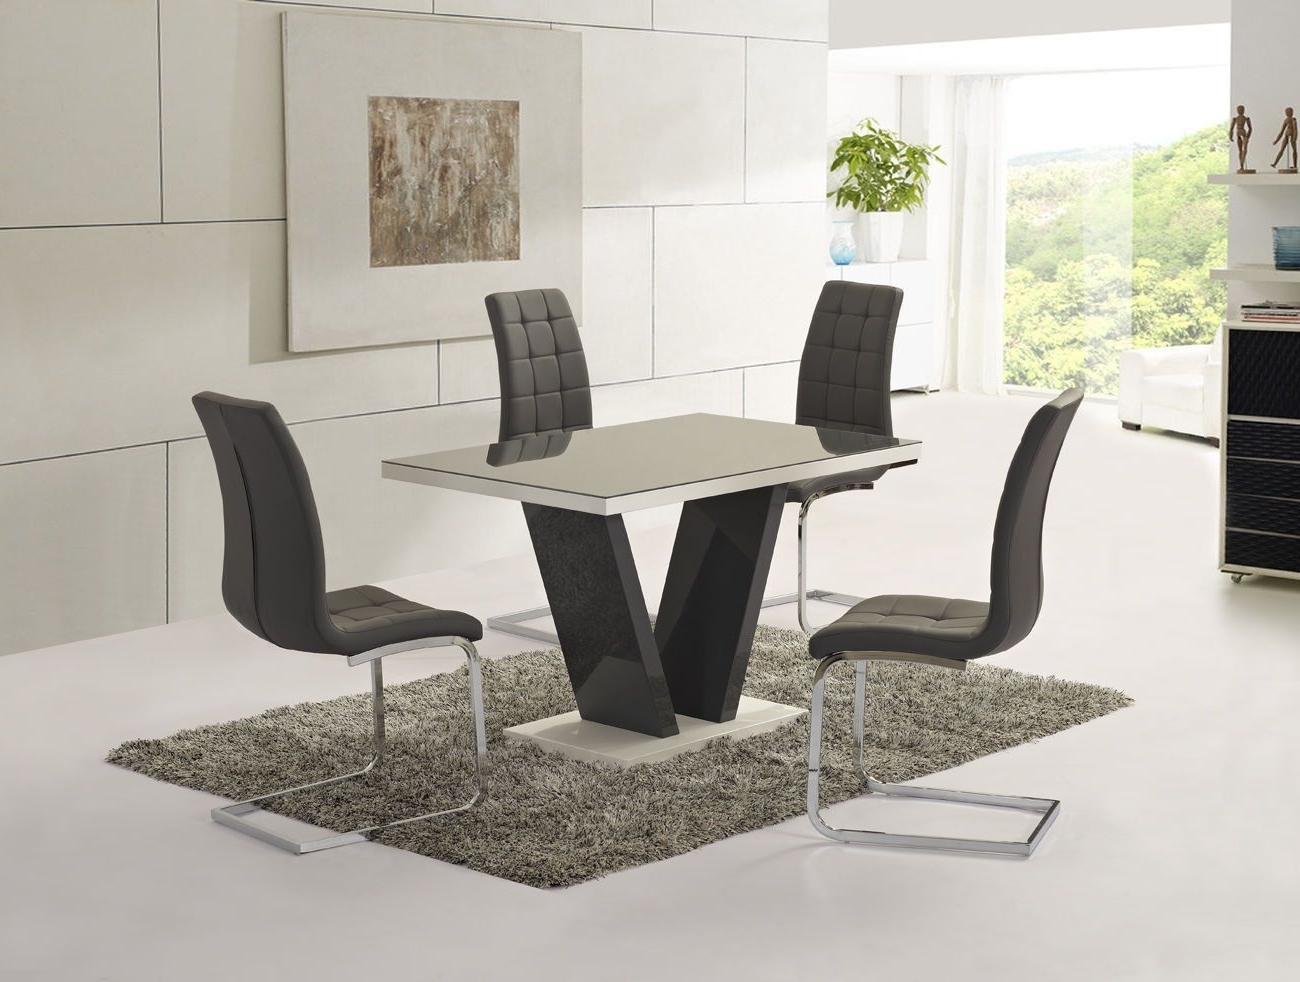 Preferred 2019 White High Gloss Dining Table 6 Chairs – Modern Style Furniture With Regard To High Gloss Dining Tables Sets (View 23 of 25)